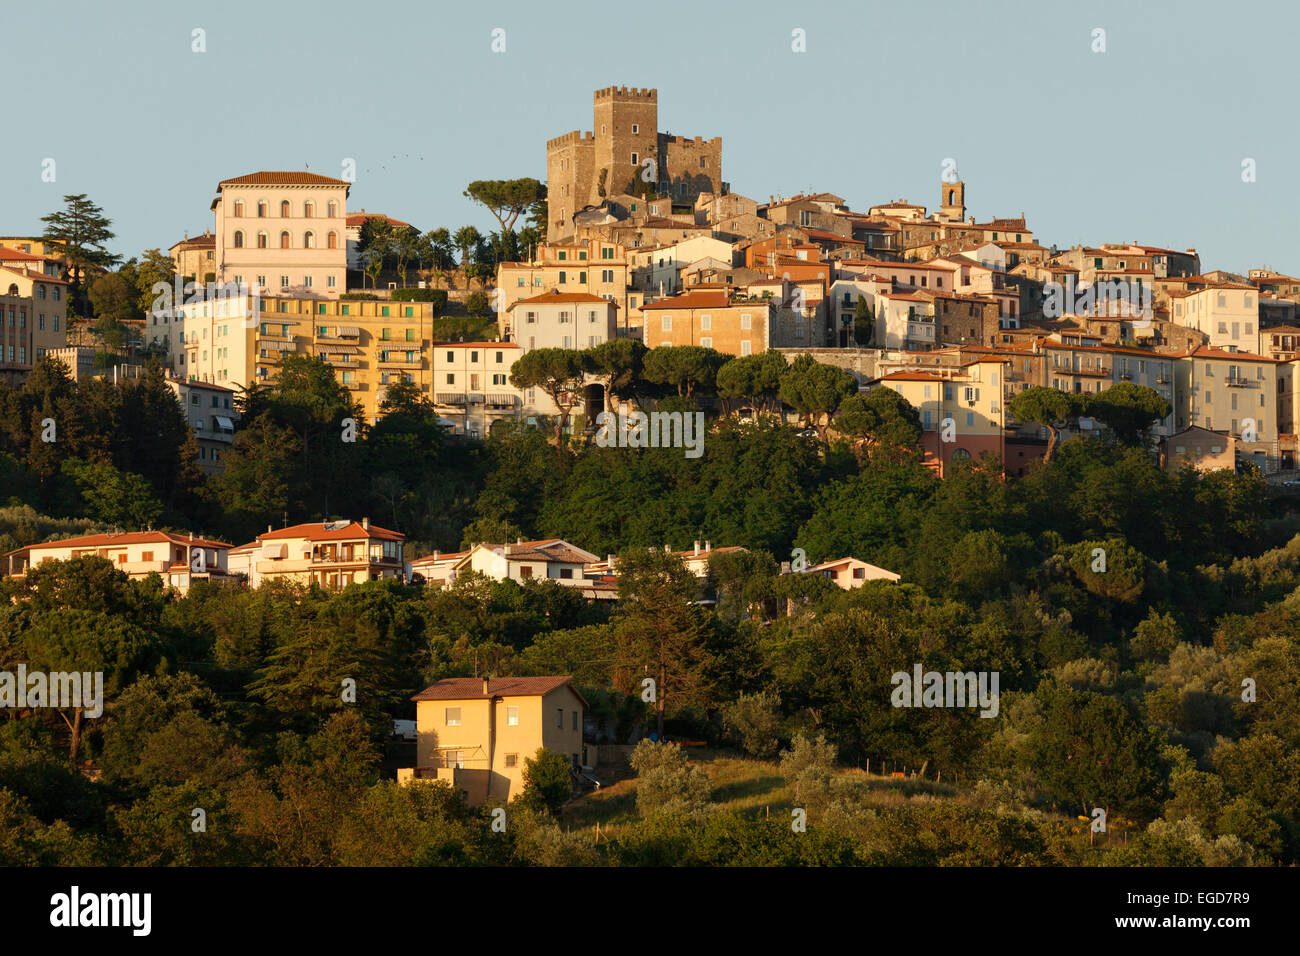 Manciano with fortress, province of Grosseto, Tuscany, Italy, Europe - Stock Image